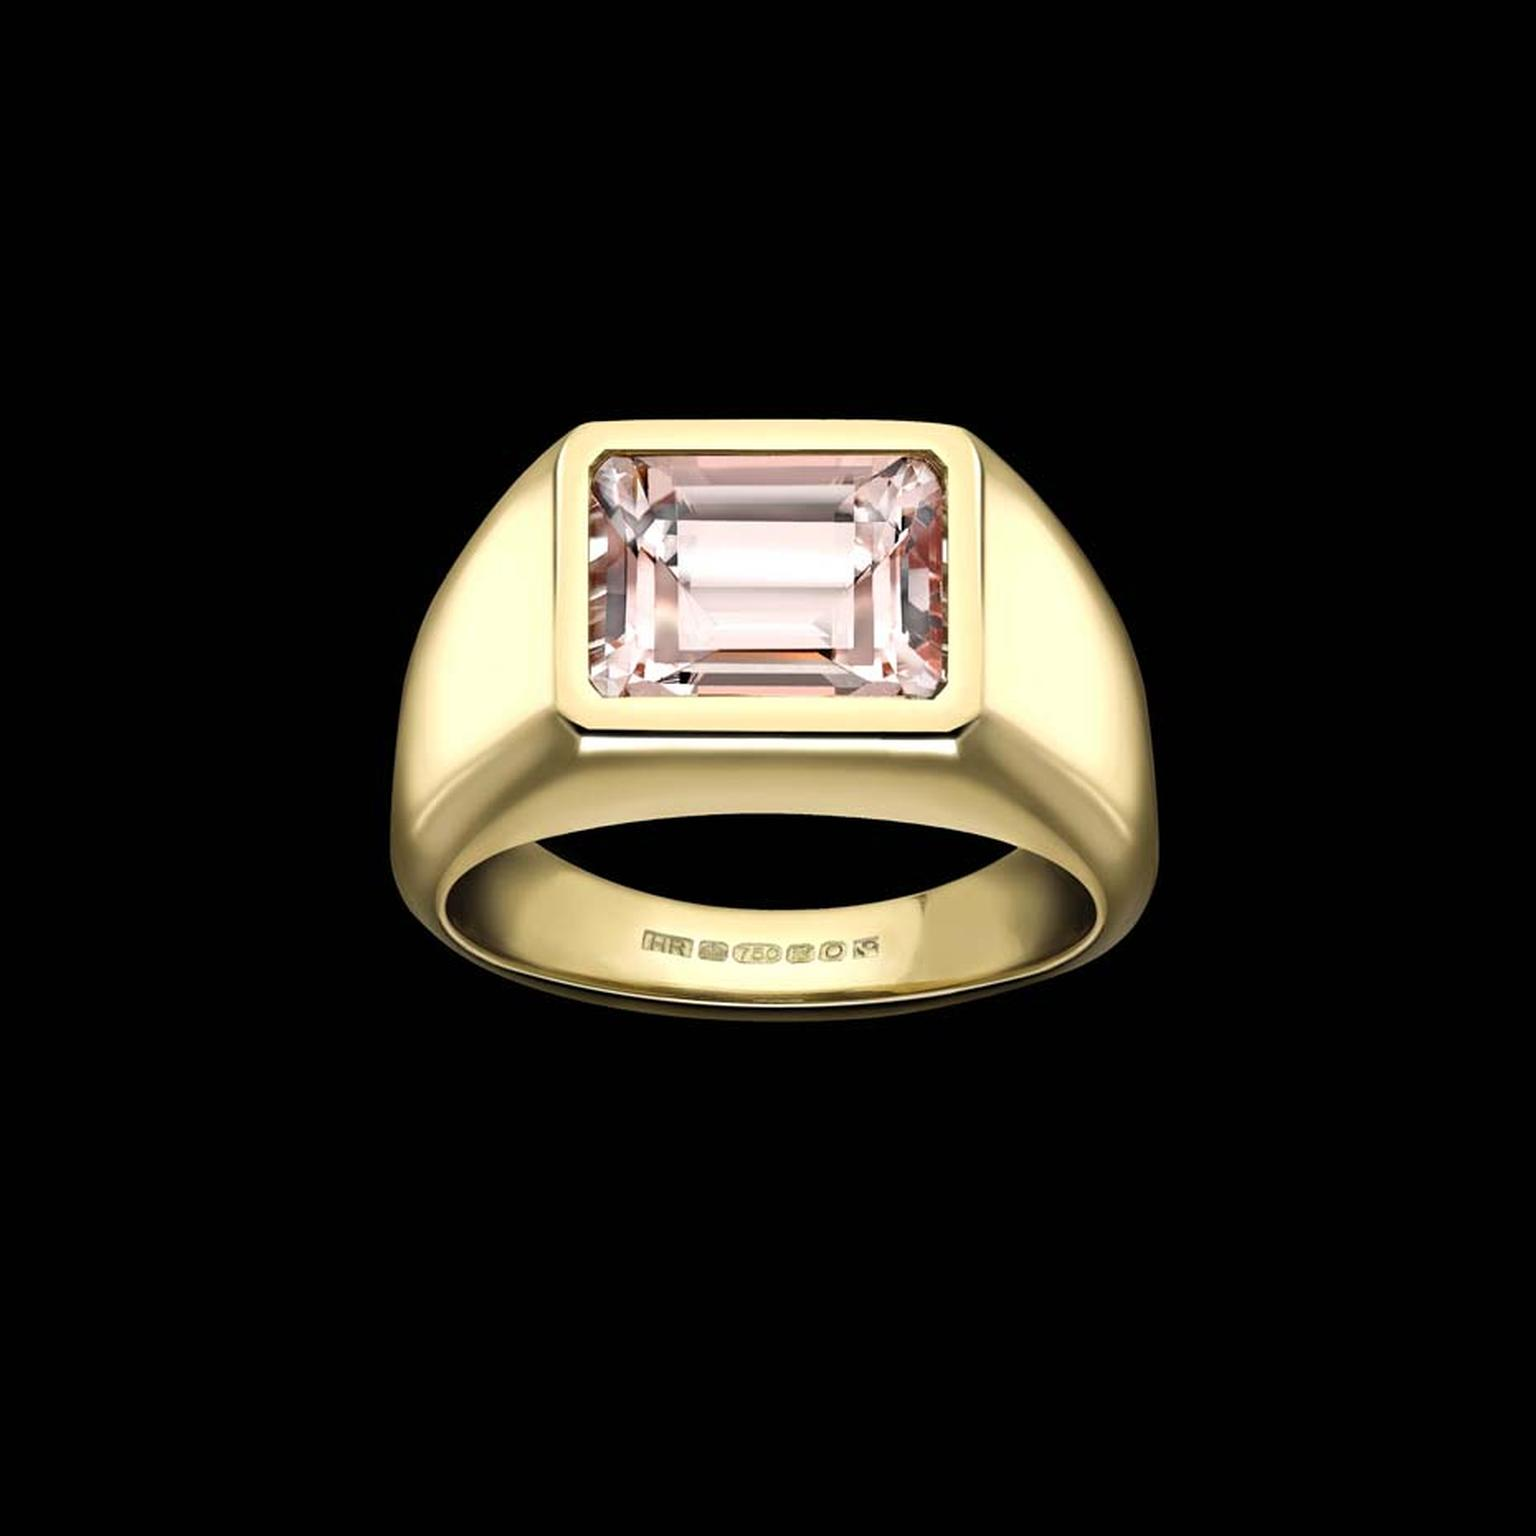 This bespoke morganite engagement ring by Hattie Rickards was created with a contribution of gold from two families.